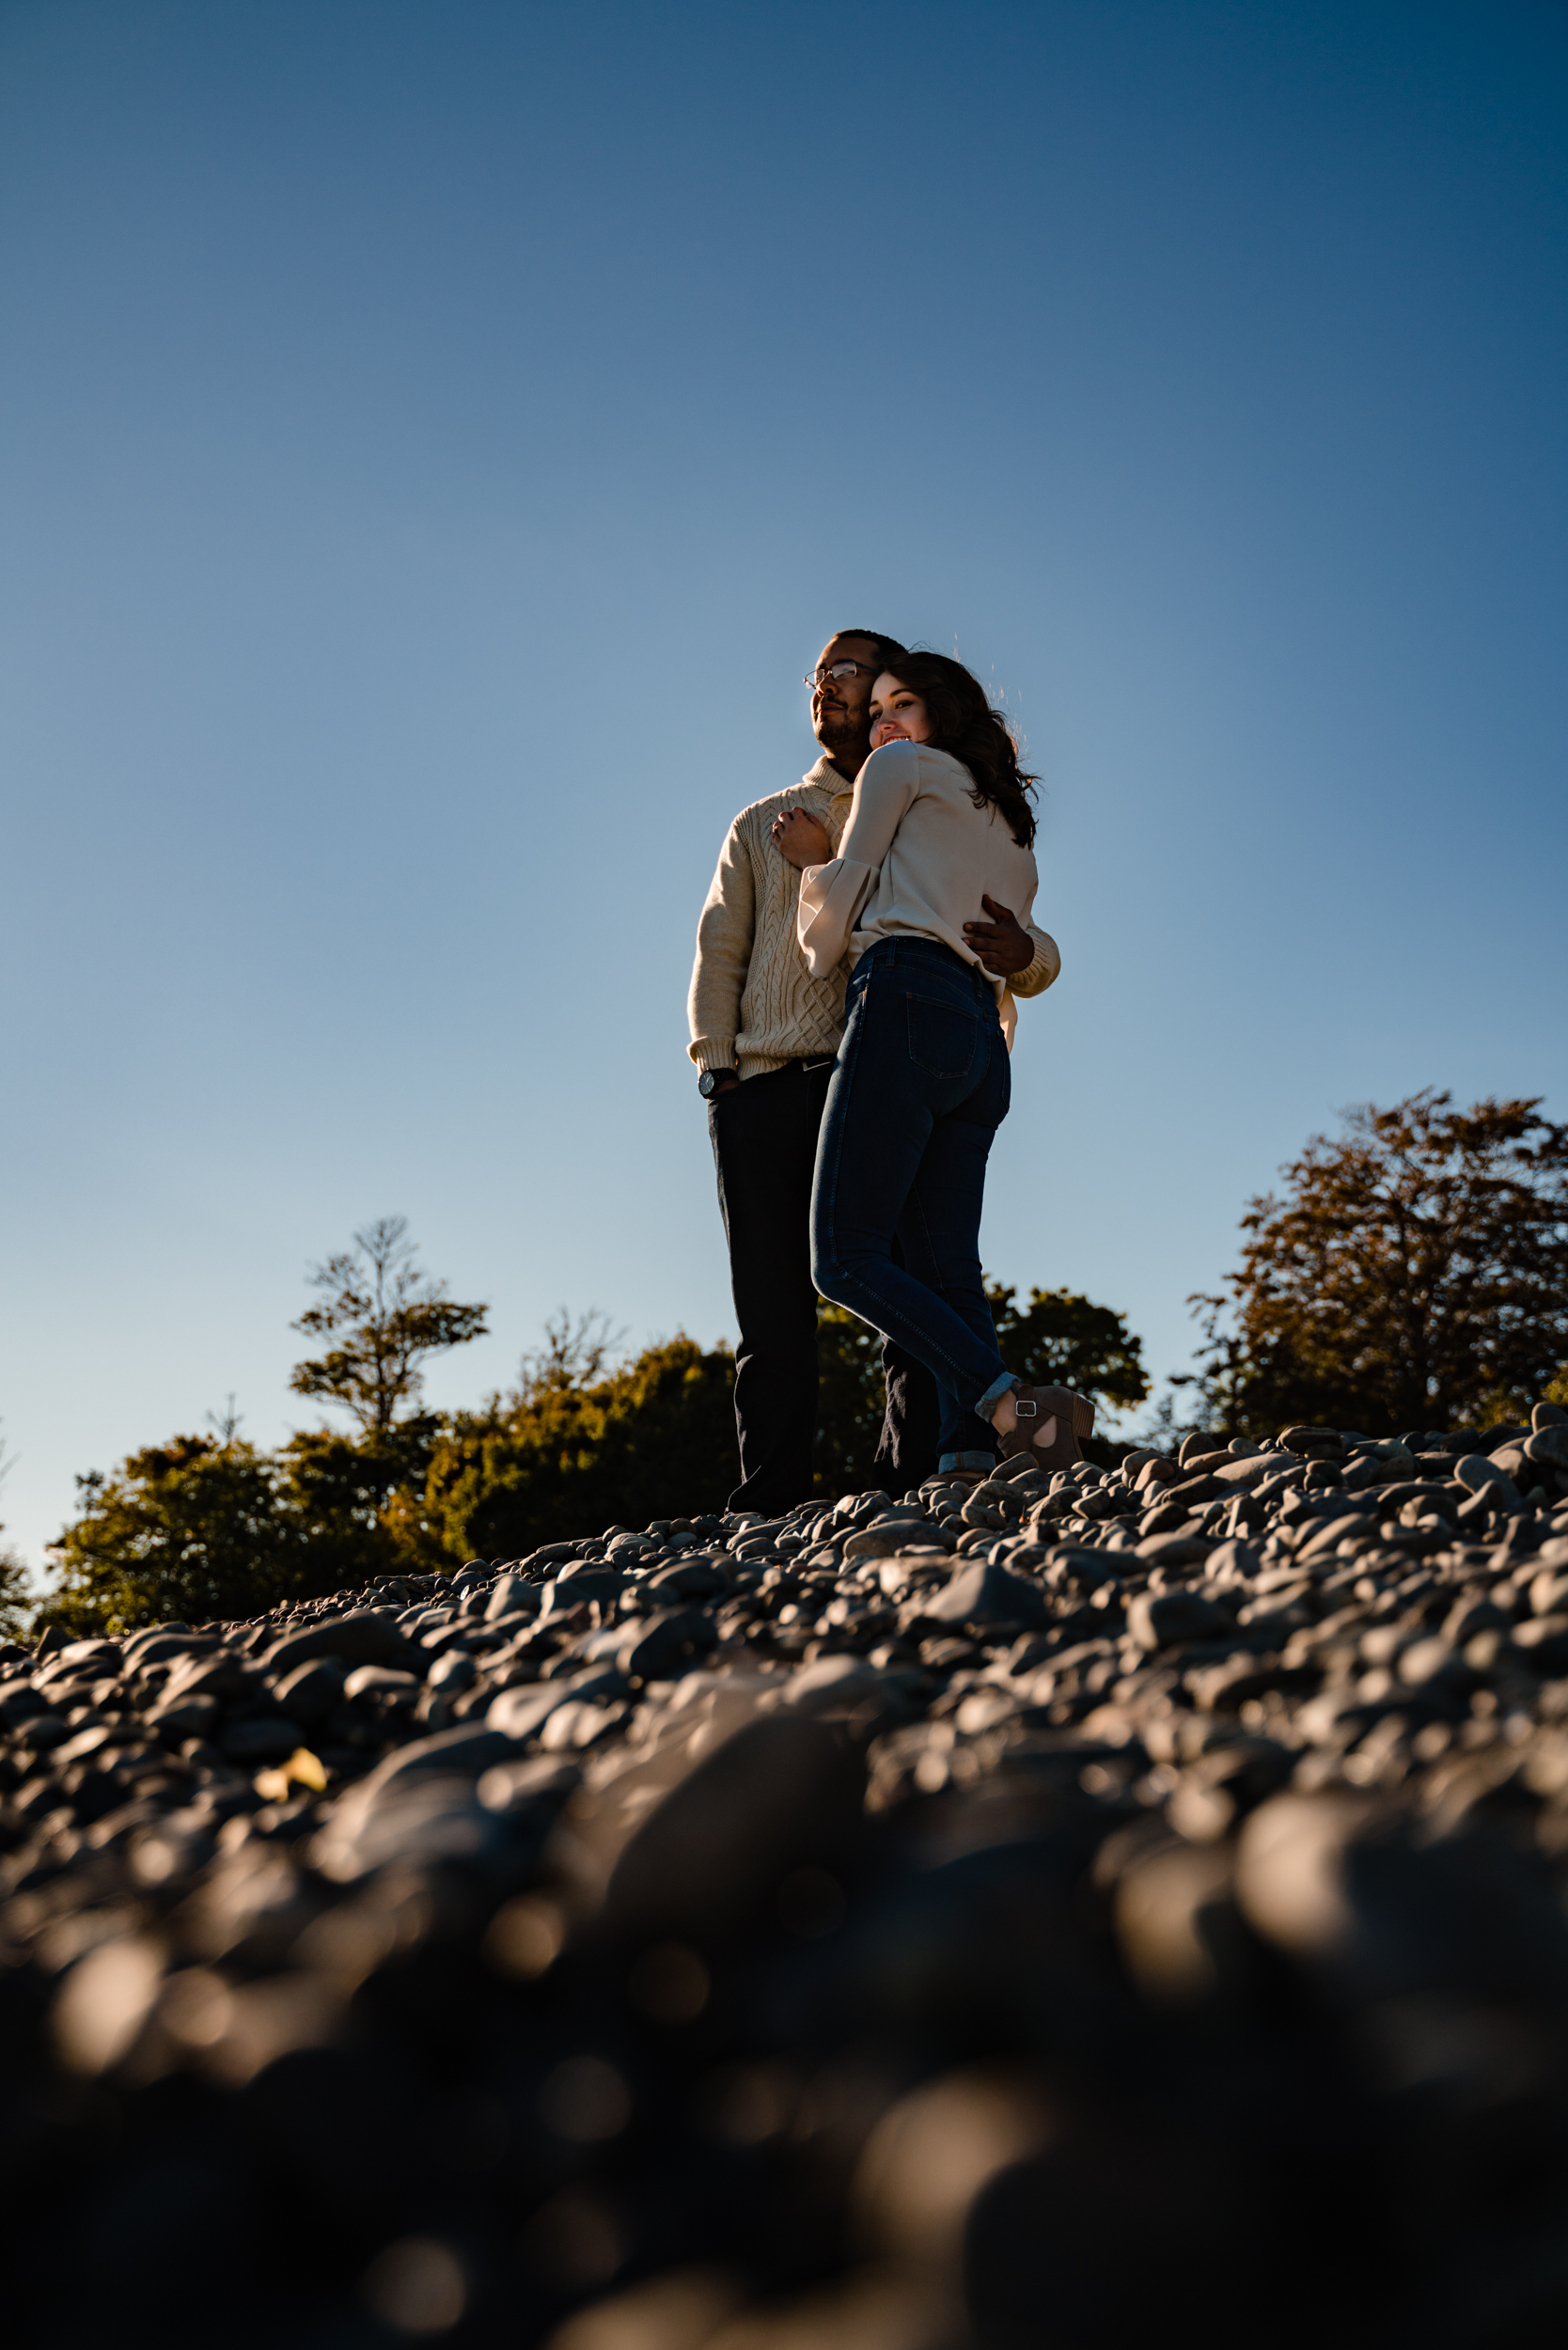 Wedding-halifax-engagement-nova-scotia-ottawa-ontario-pointpleasantpark-Fall-Autumn (32 of 53).jpg